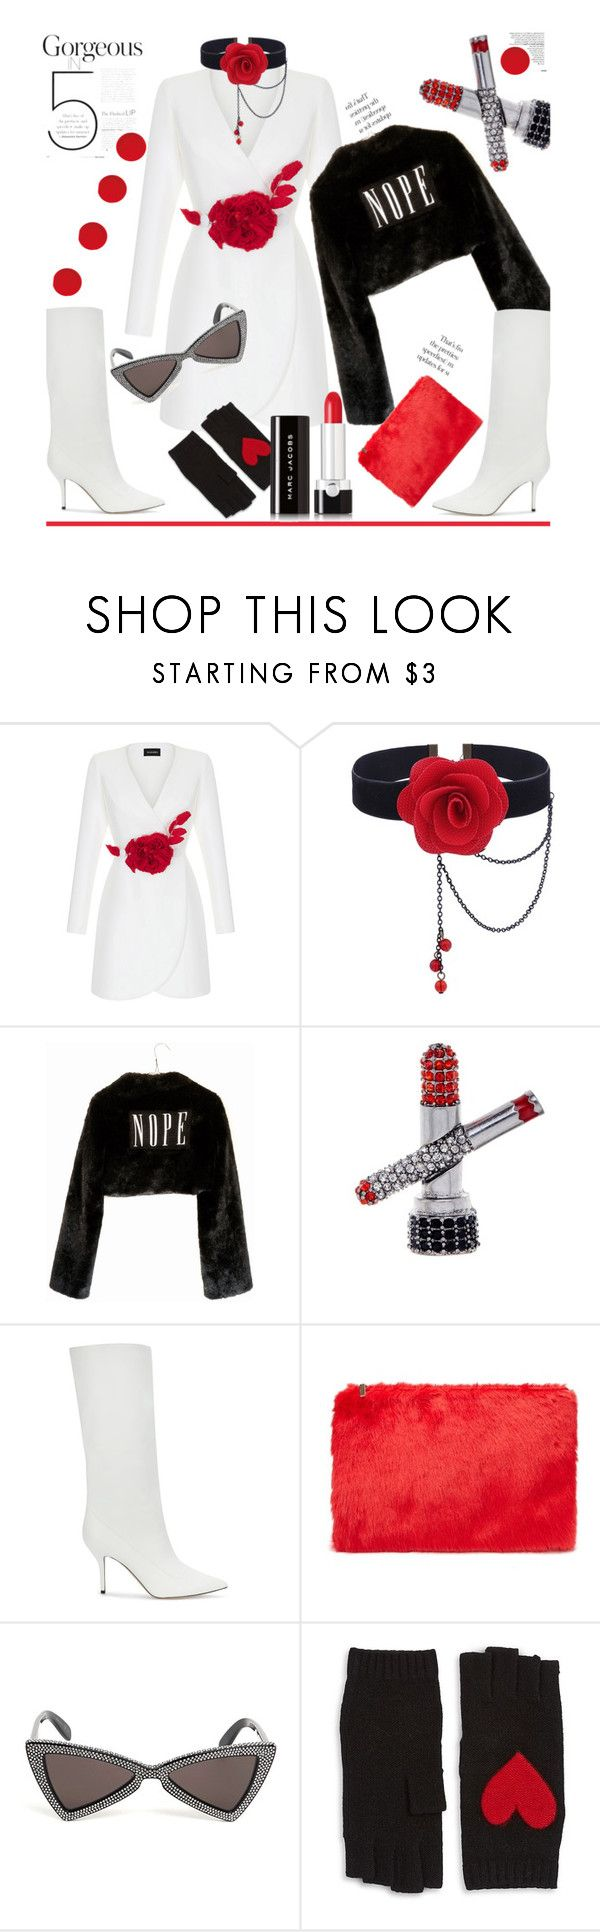 """""""#PolyPresents: Statement Jewelry"""" by dianefantasy ❤ liked on Polyvore featuring Rasario, Wet Seal, Marc Jacobs, Paul Andrew, Forever 21, Yves Saint Laurent, Portolano, contestentry, polyvoreeditorial and polyPresents"""